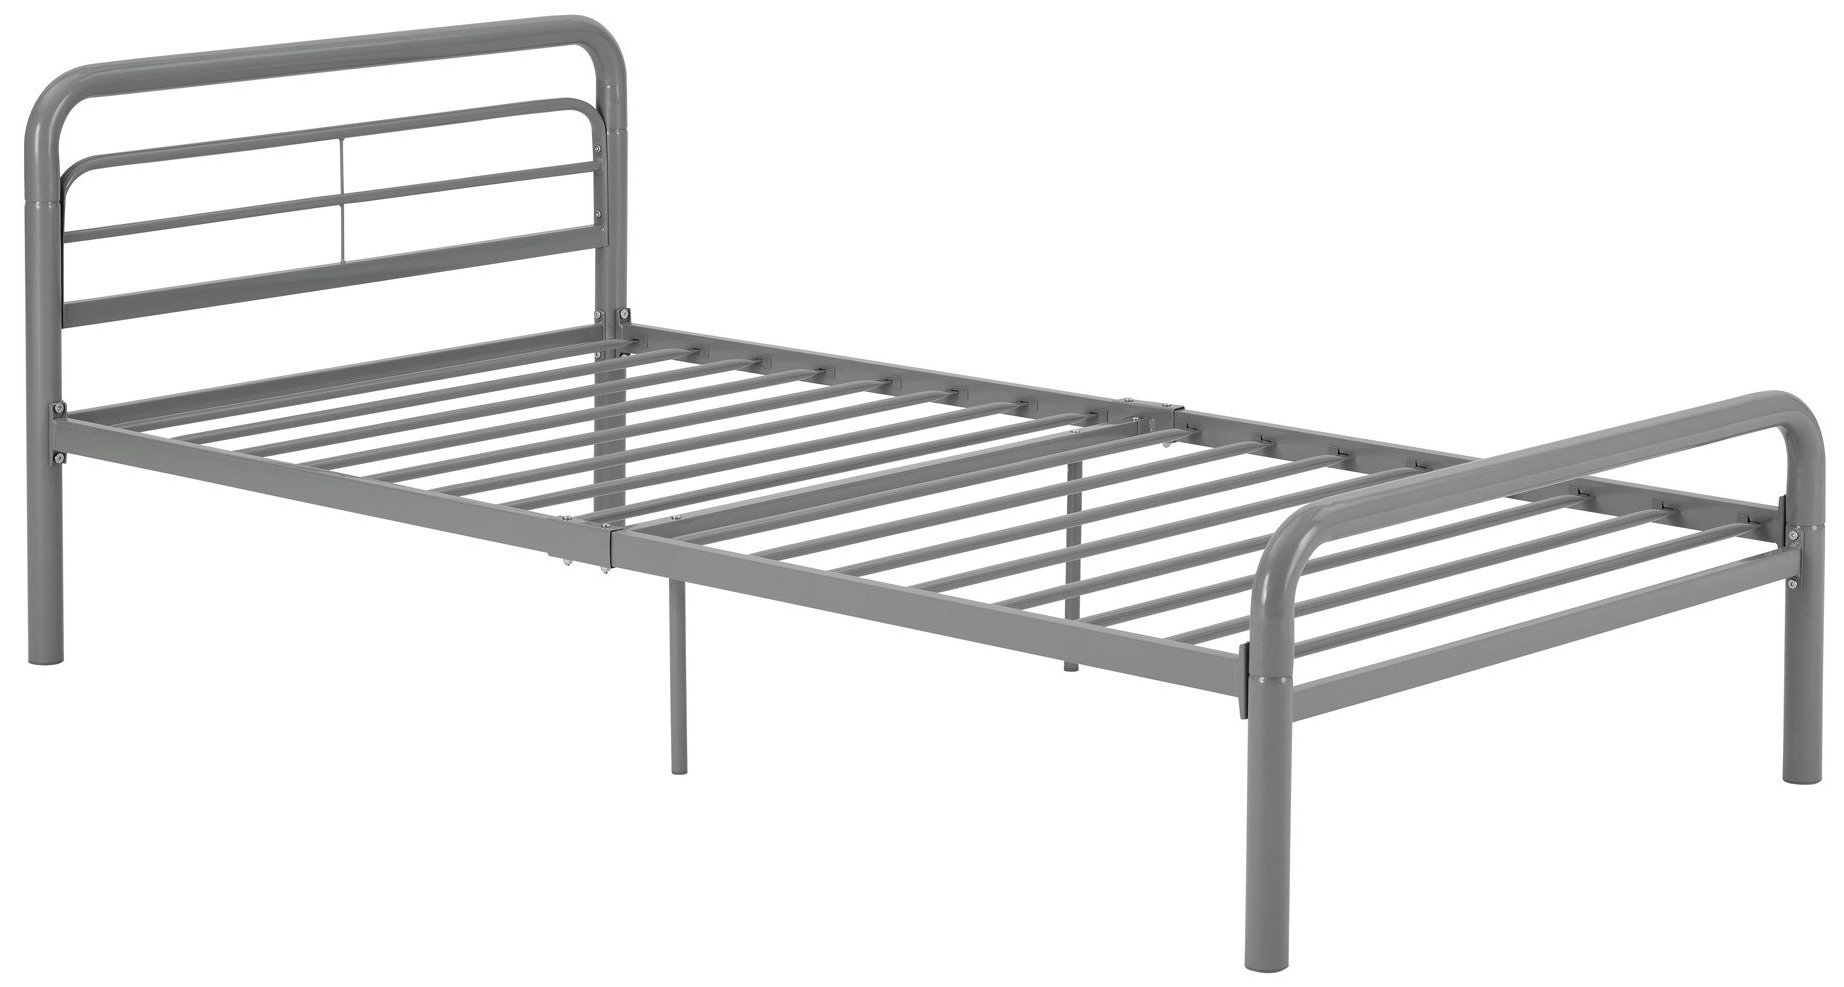 DHP Metal Bed with Round Tubing, Modern and Simple Design, Twin, Silver by DHP